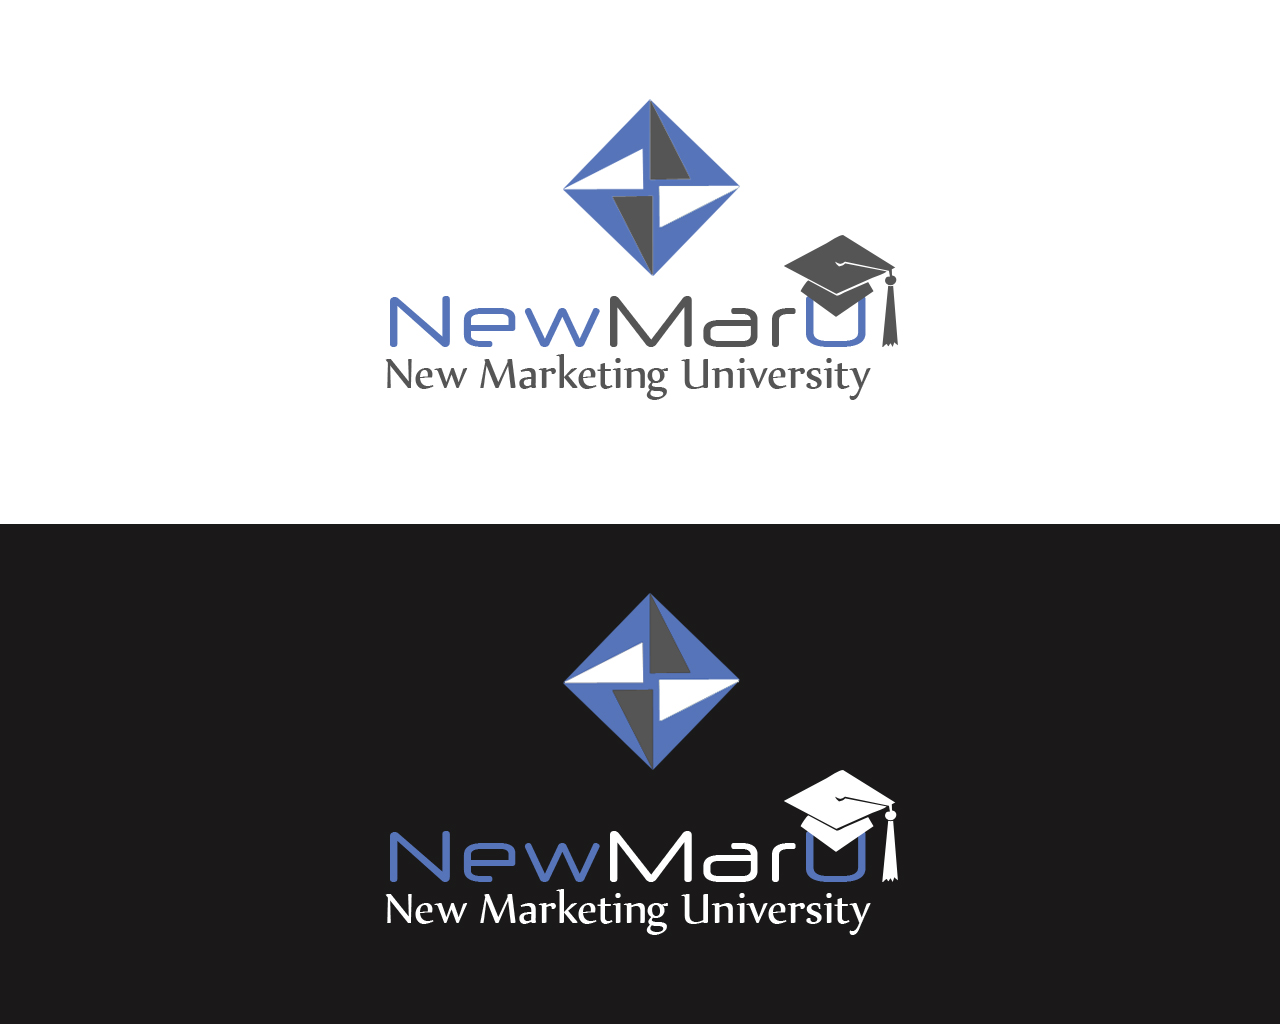 Logo Design by Prokopiev - Entry No. 12 in the Logo Design Contest NewMarU.com (New Marketing University).